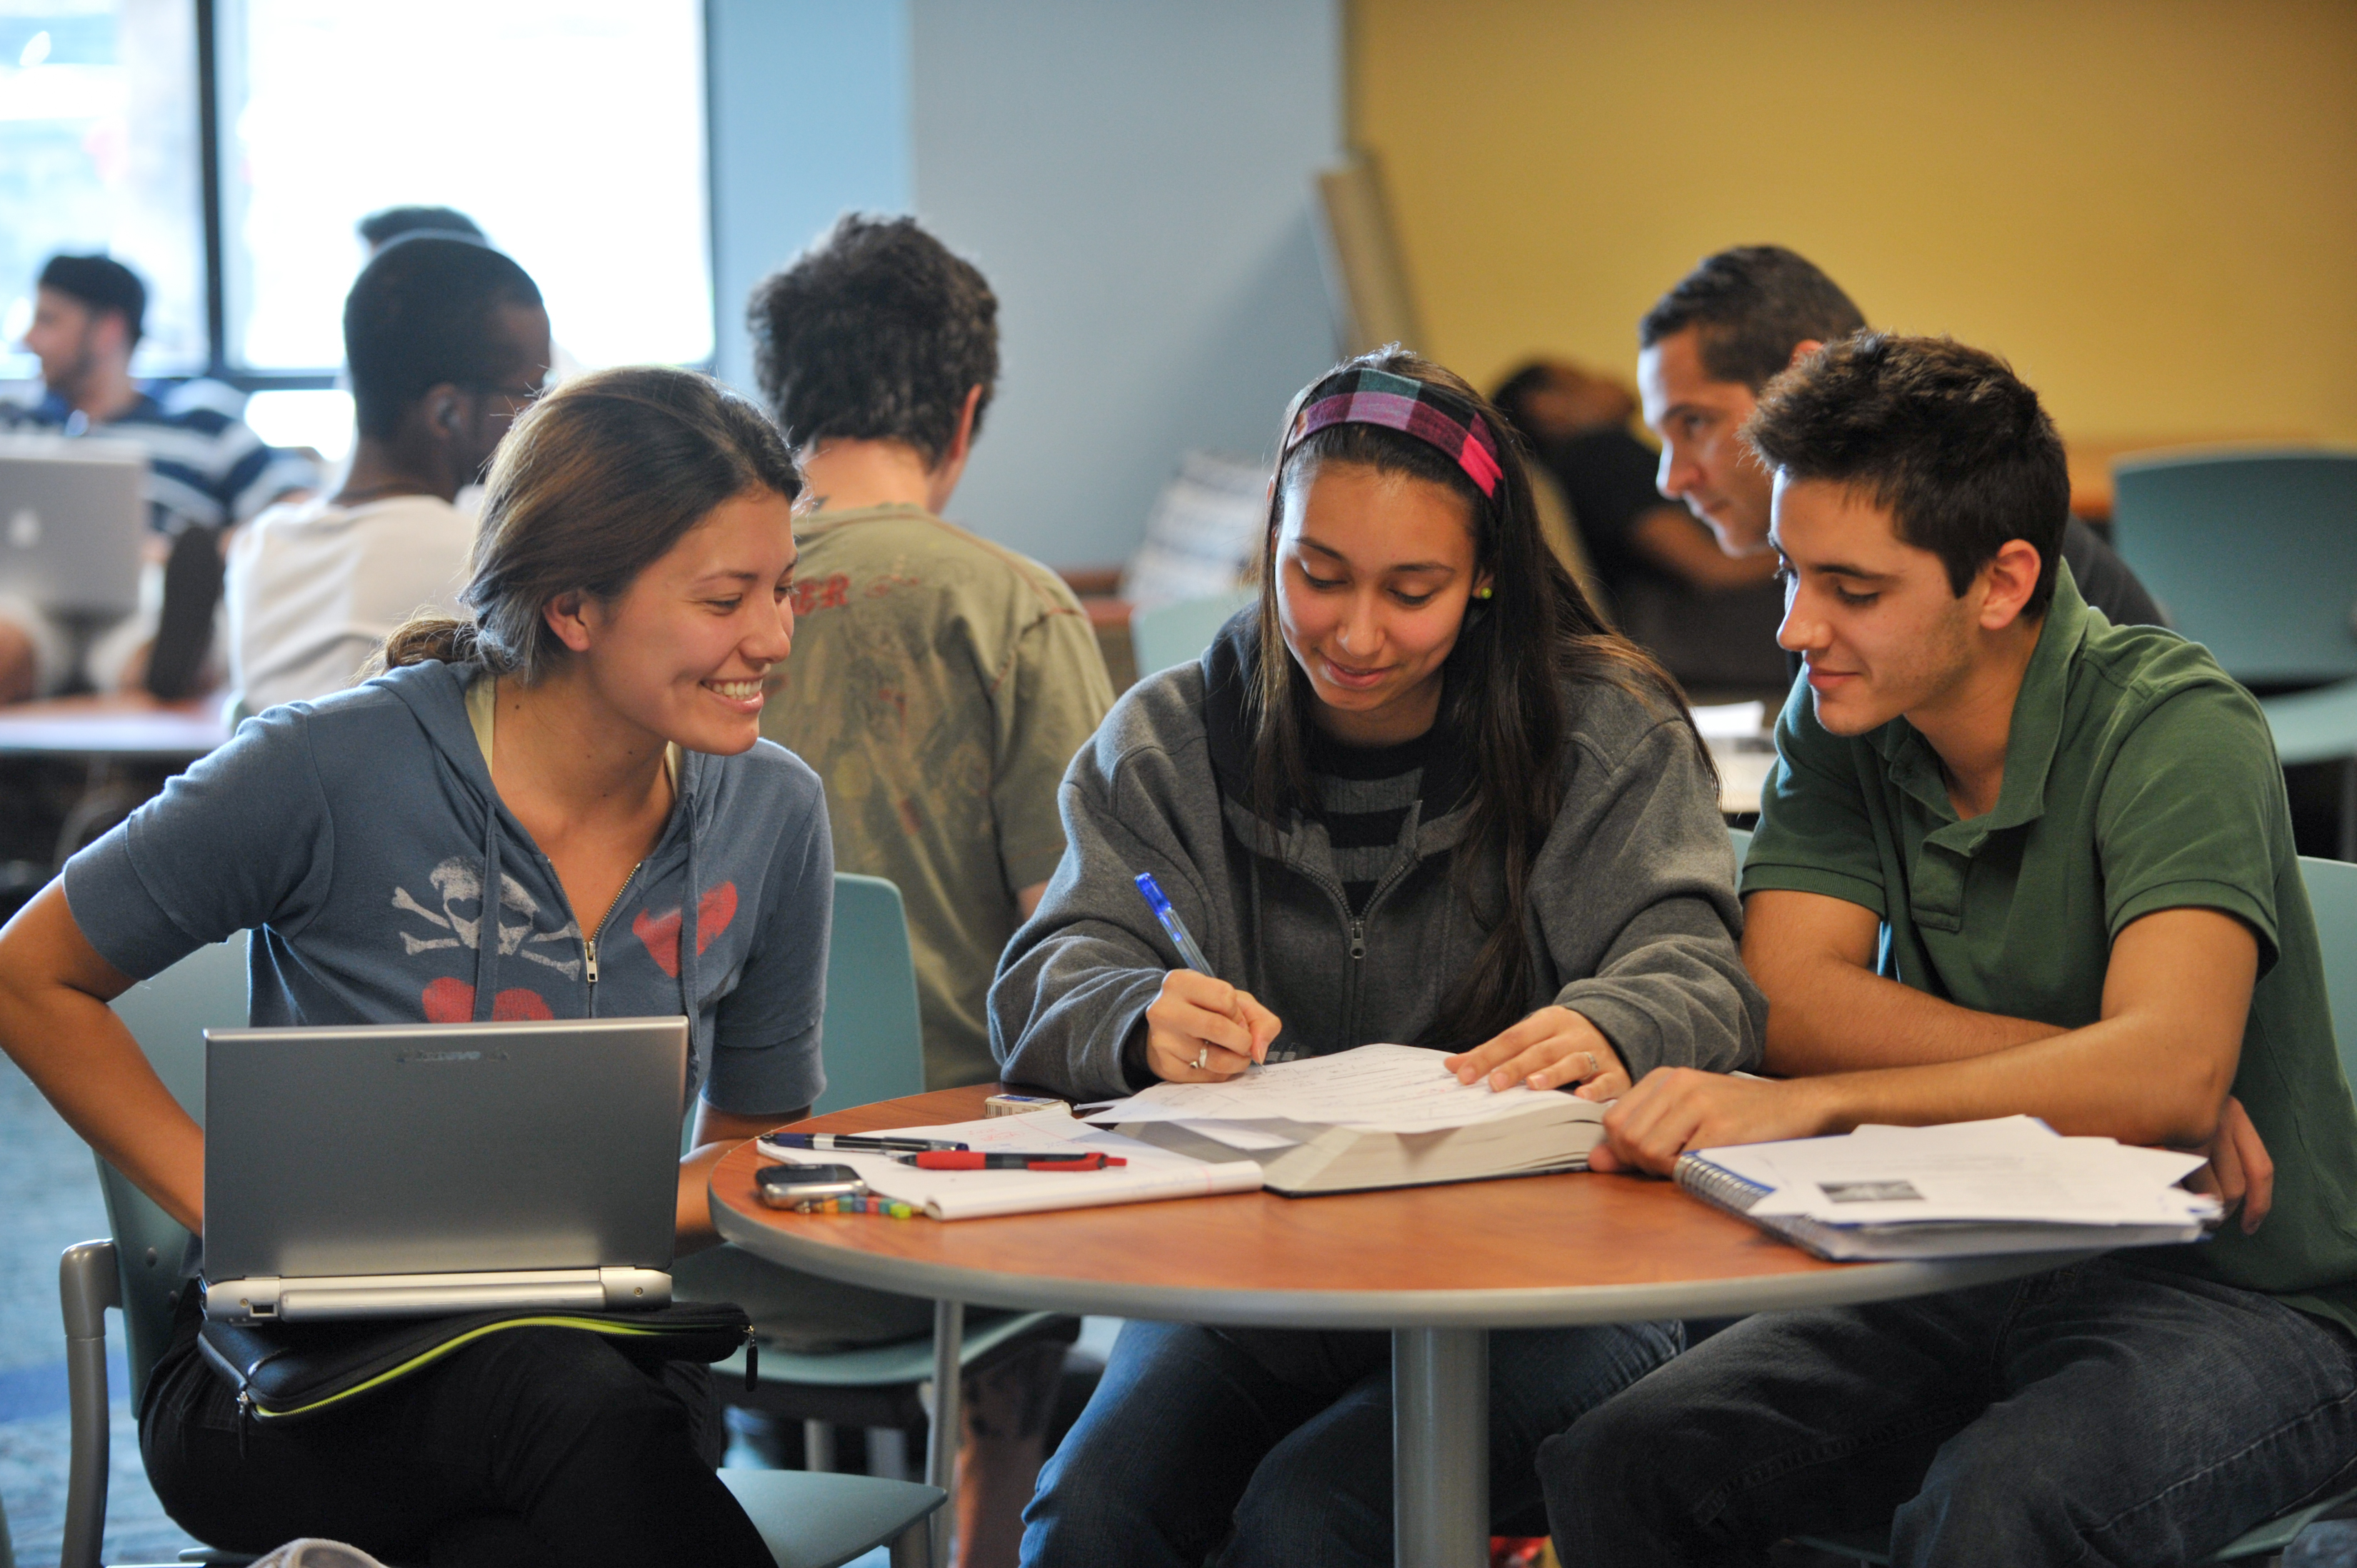 centennial college application form for international students